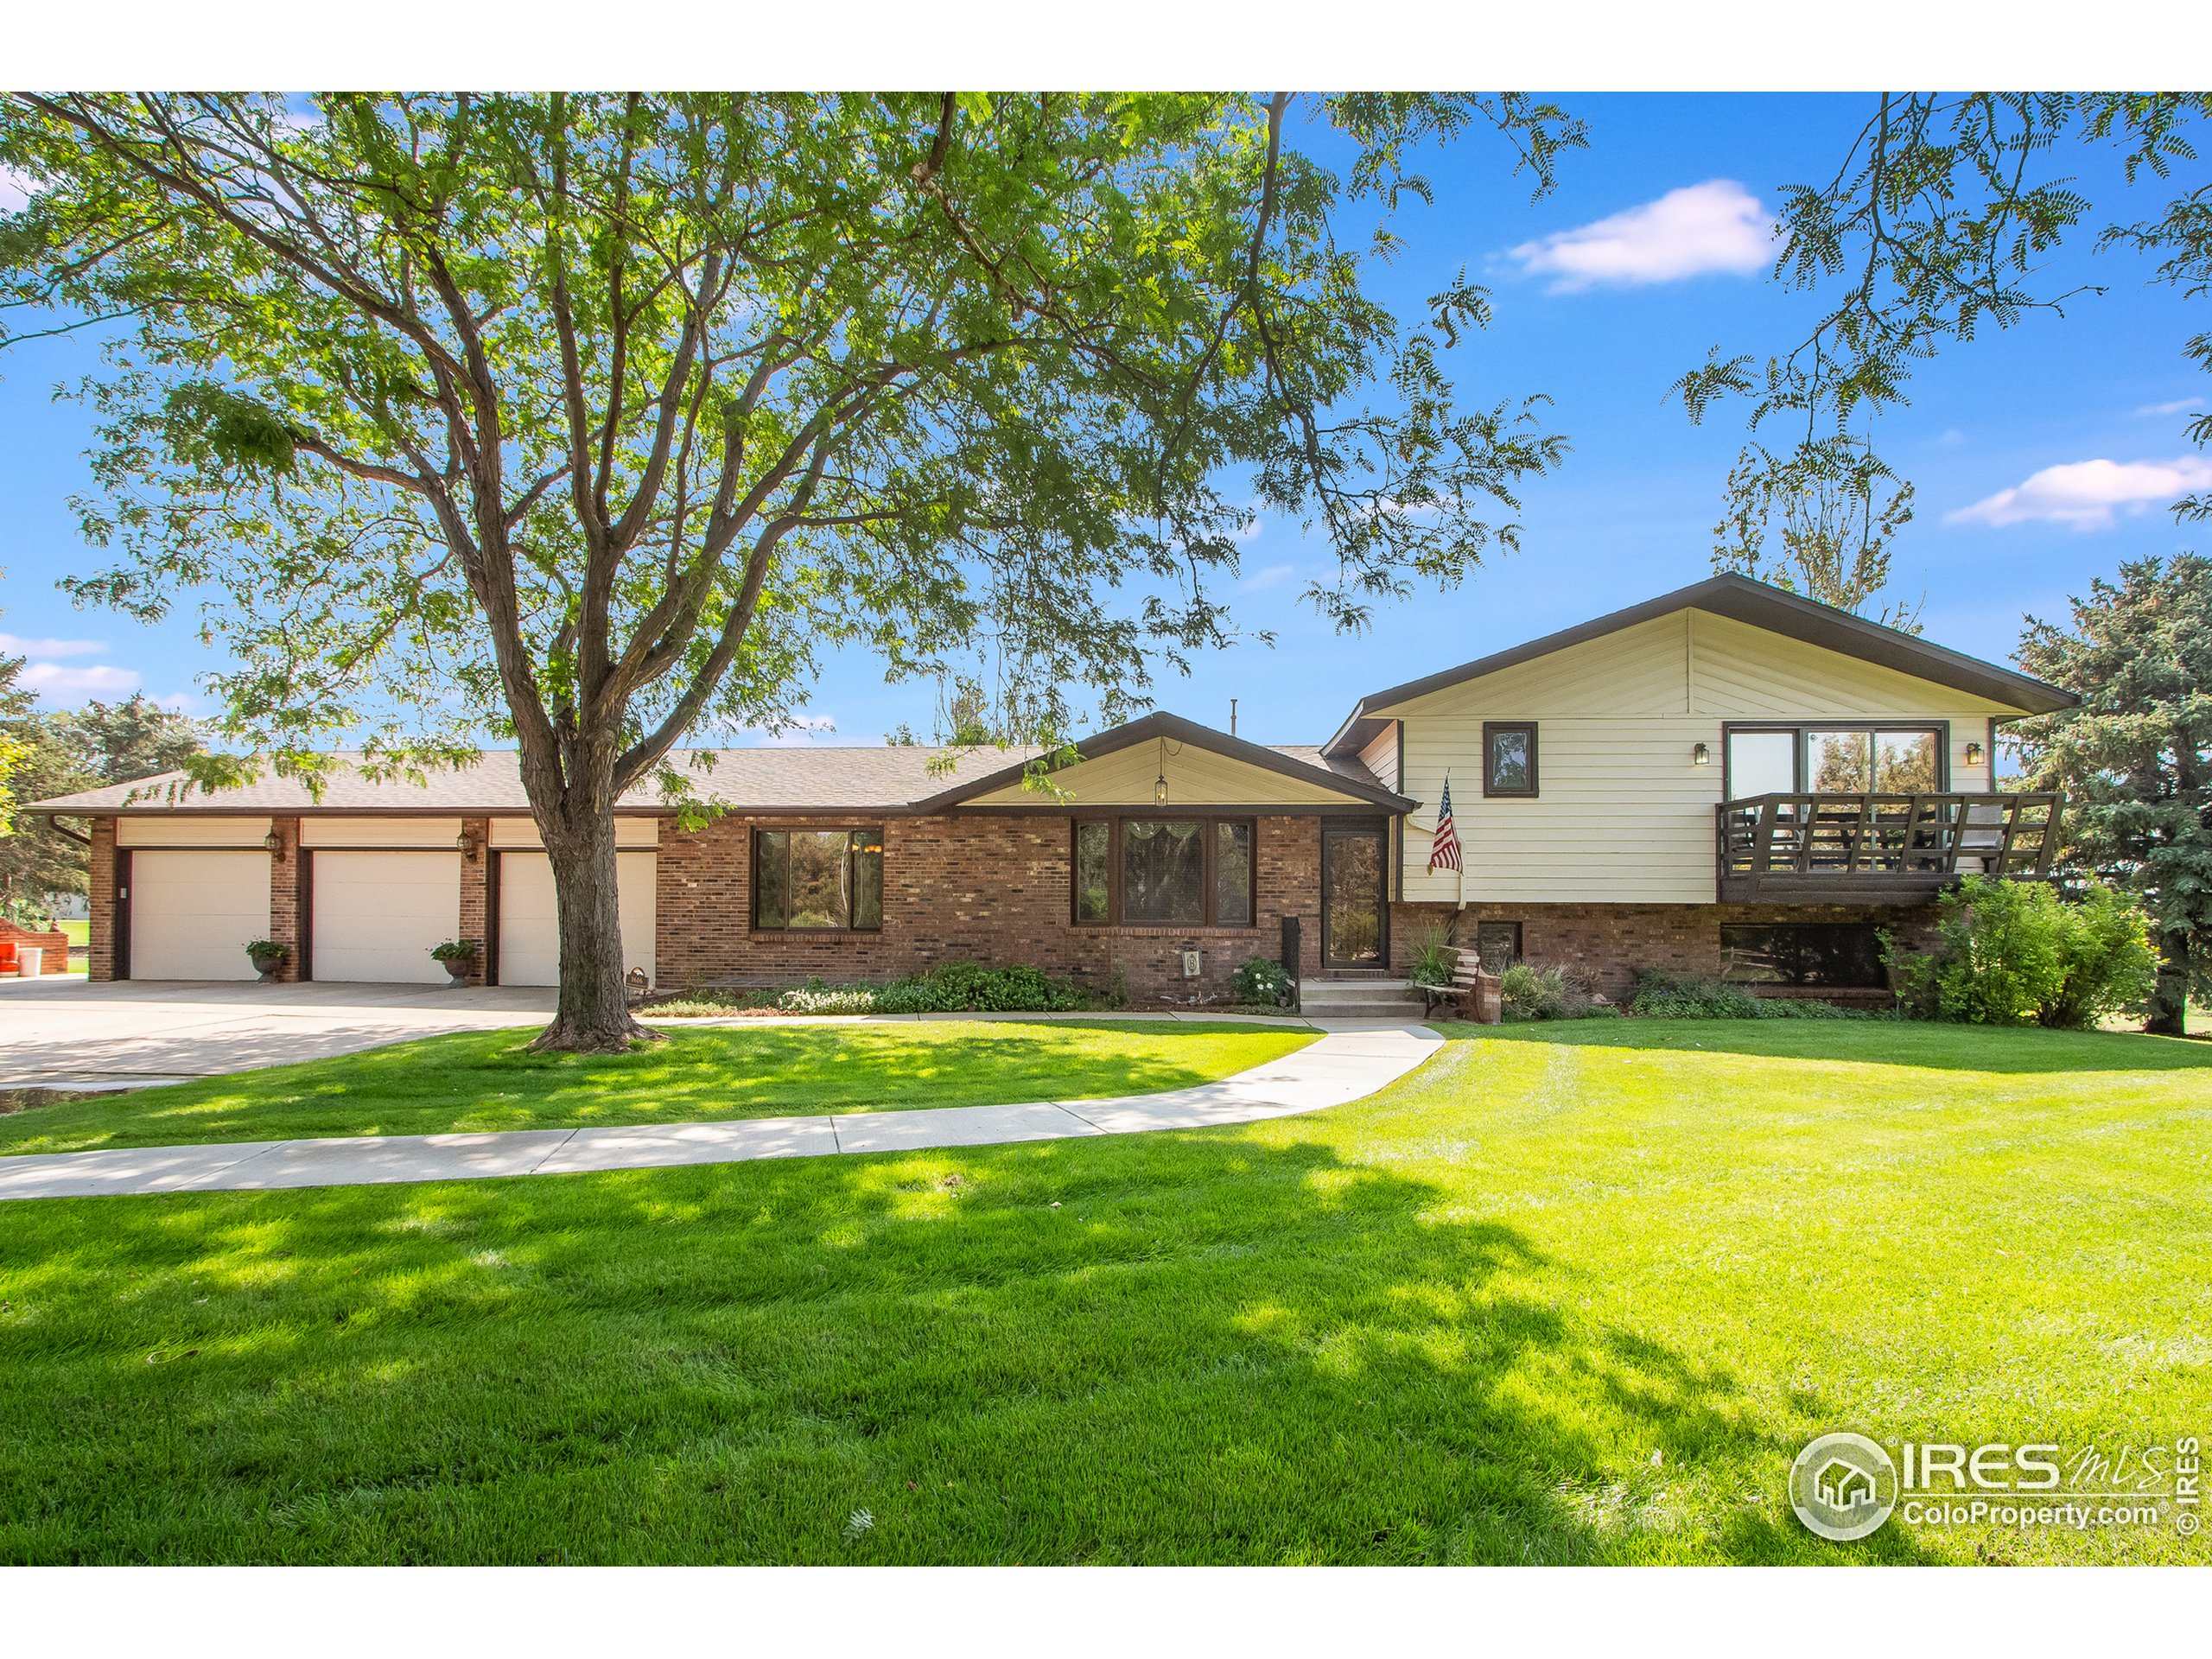 1616 N 35th Ave Ct, Greeley, CO 80631